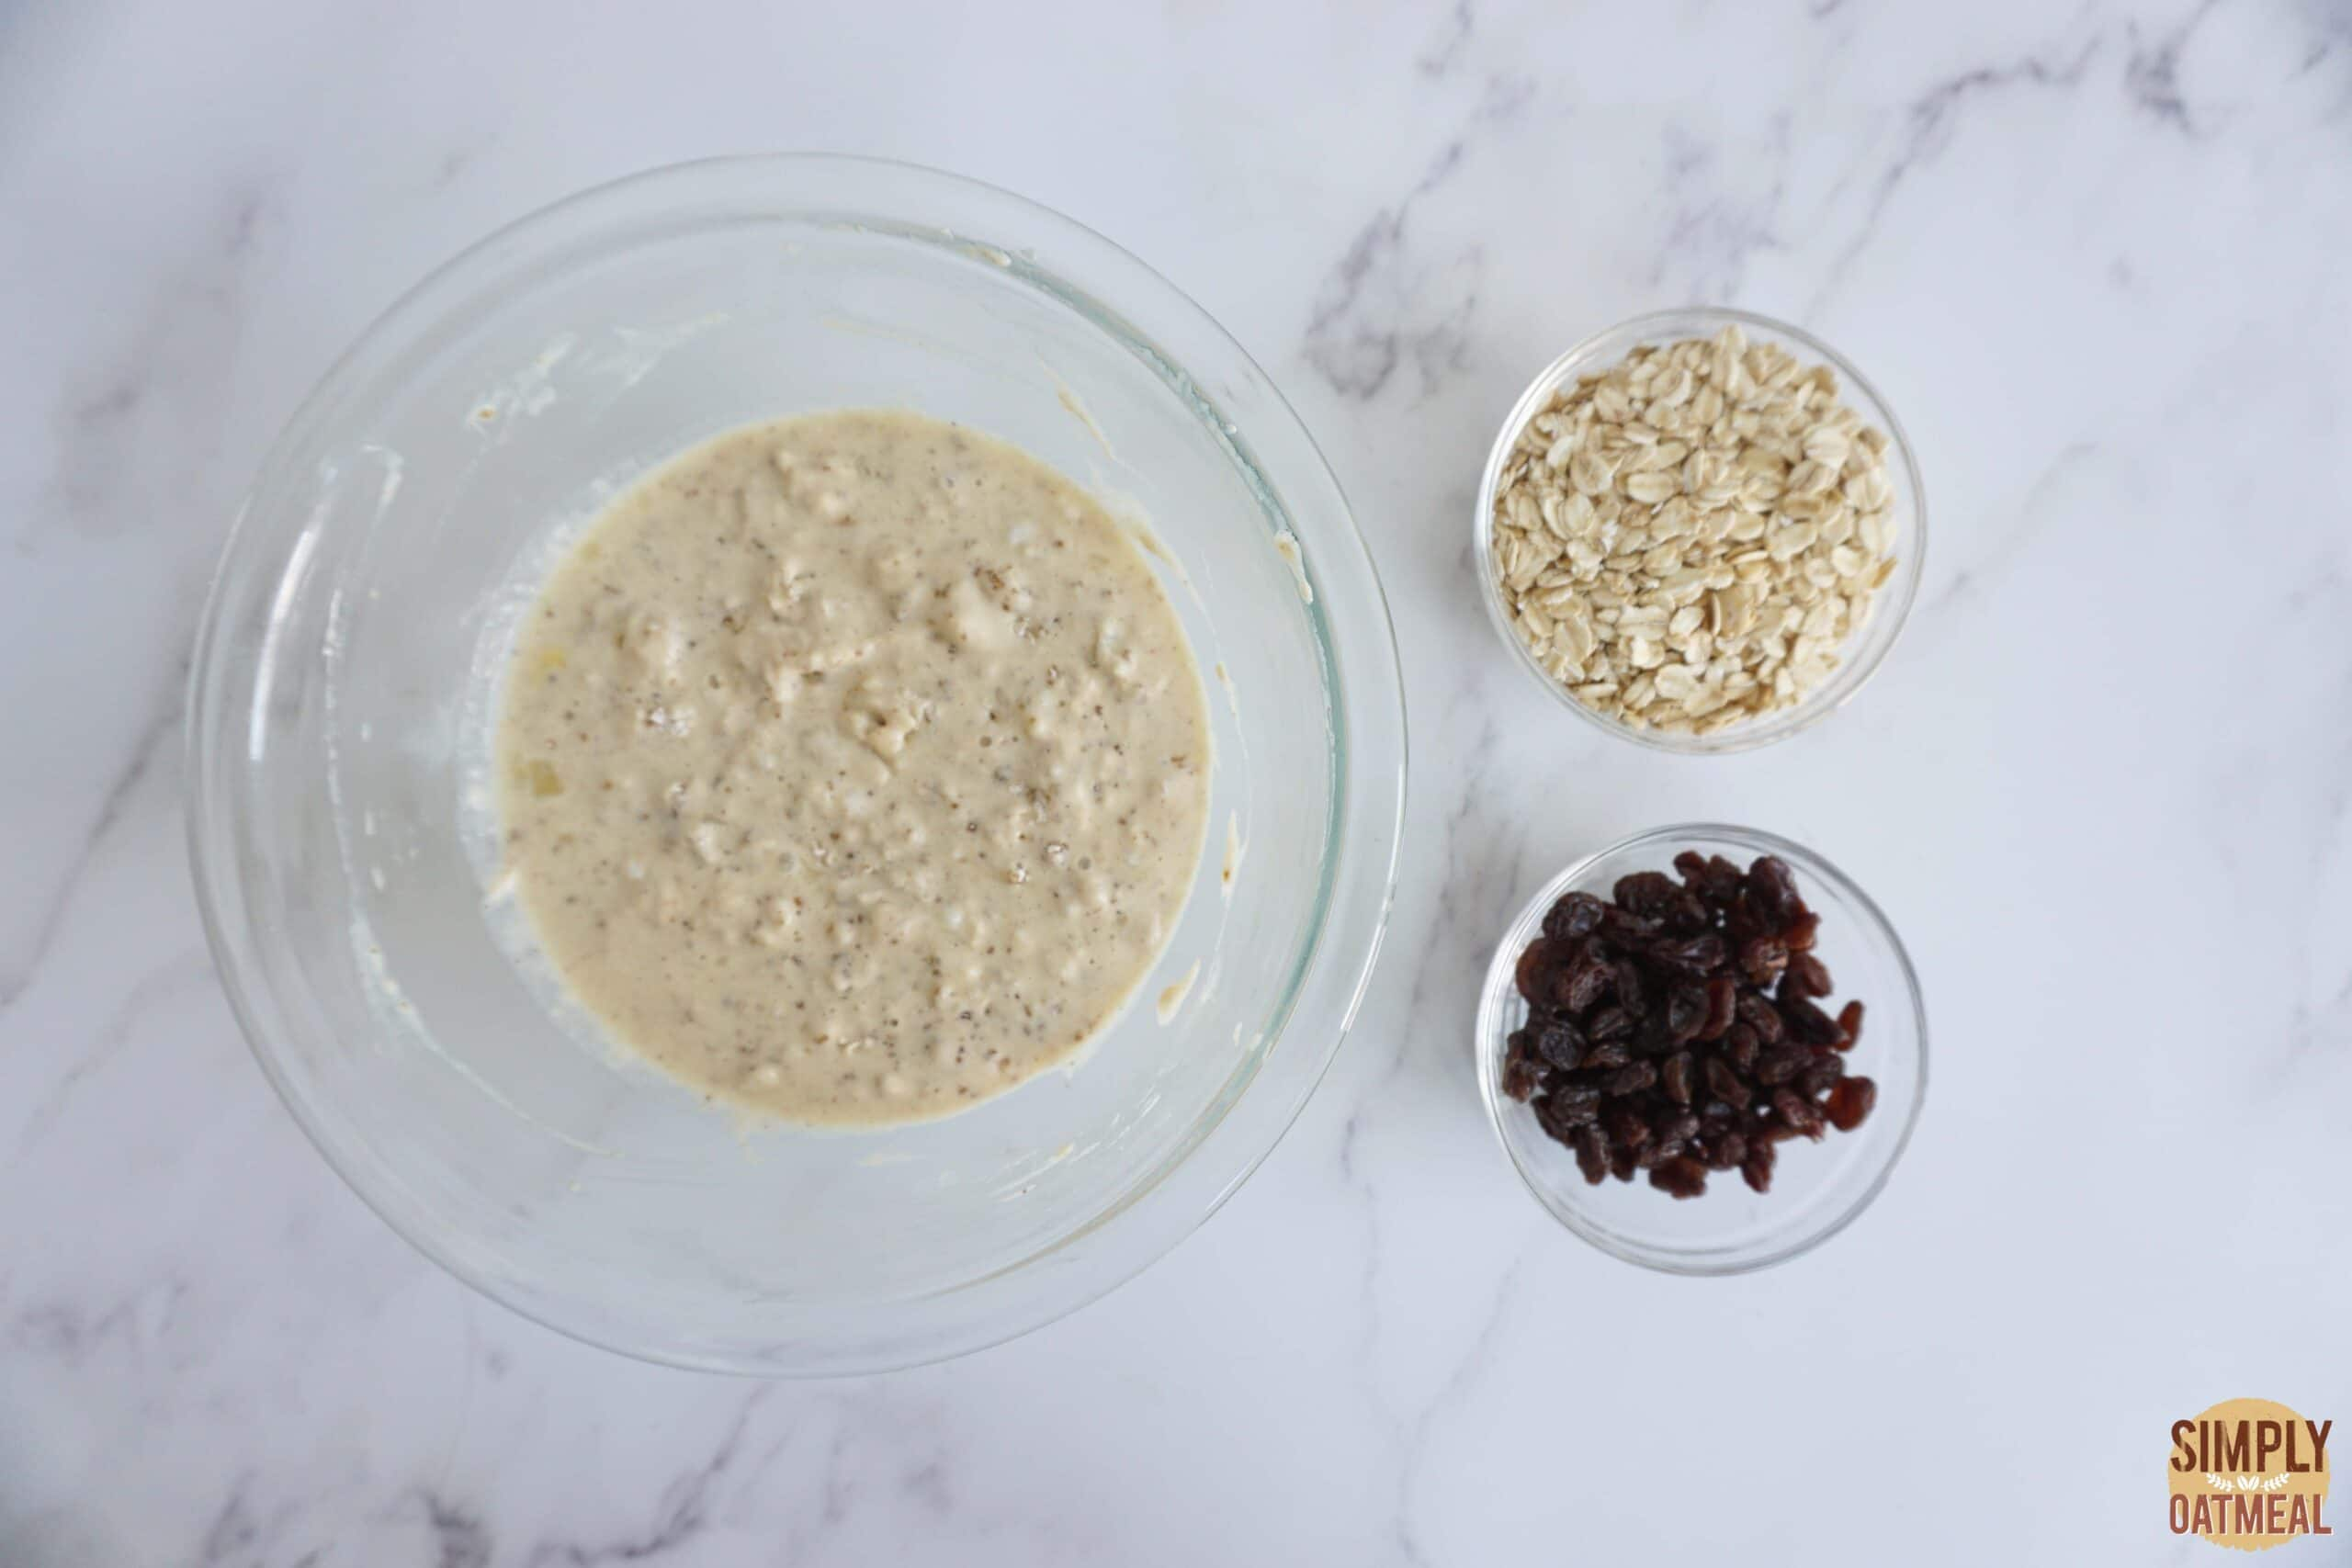 Wet and dry ingredients to make cinnamon streusel oatmeal muffins